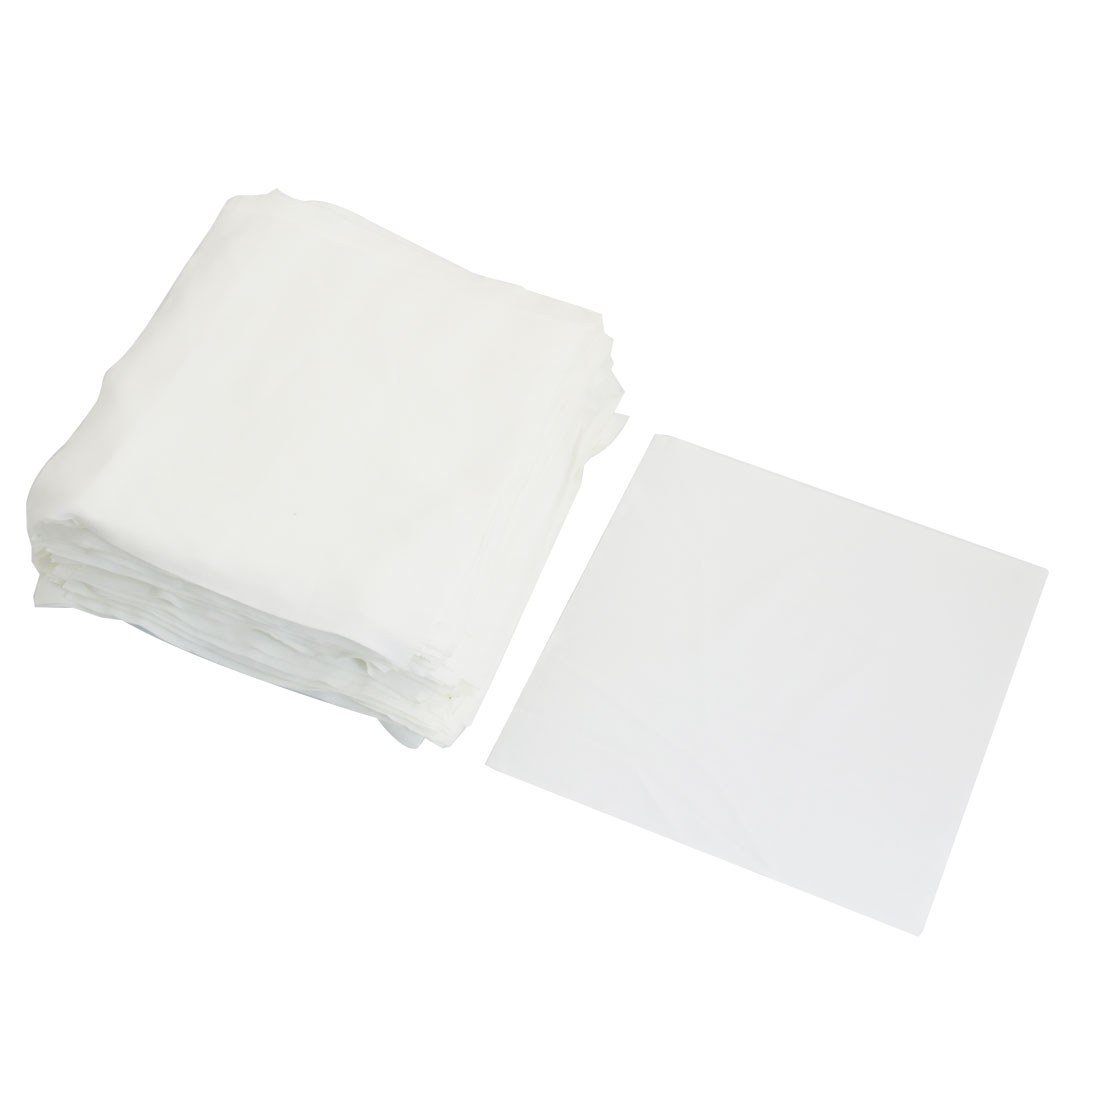 "100 Pcs 6"" x 6"" White Dustless Cleanroom Wiper Wiping Cloth"